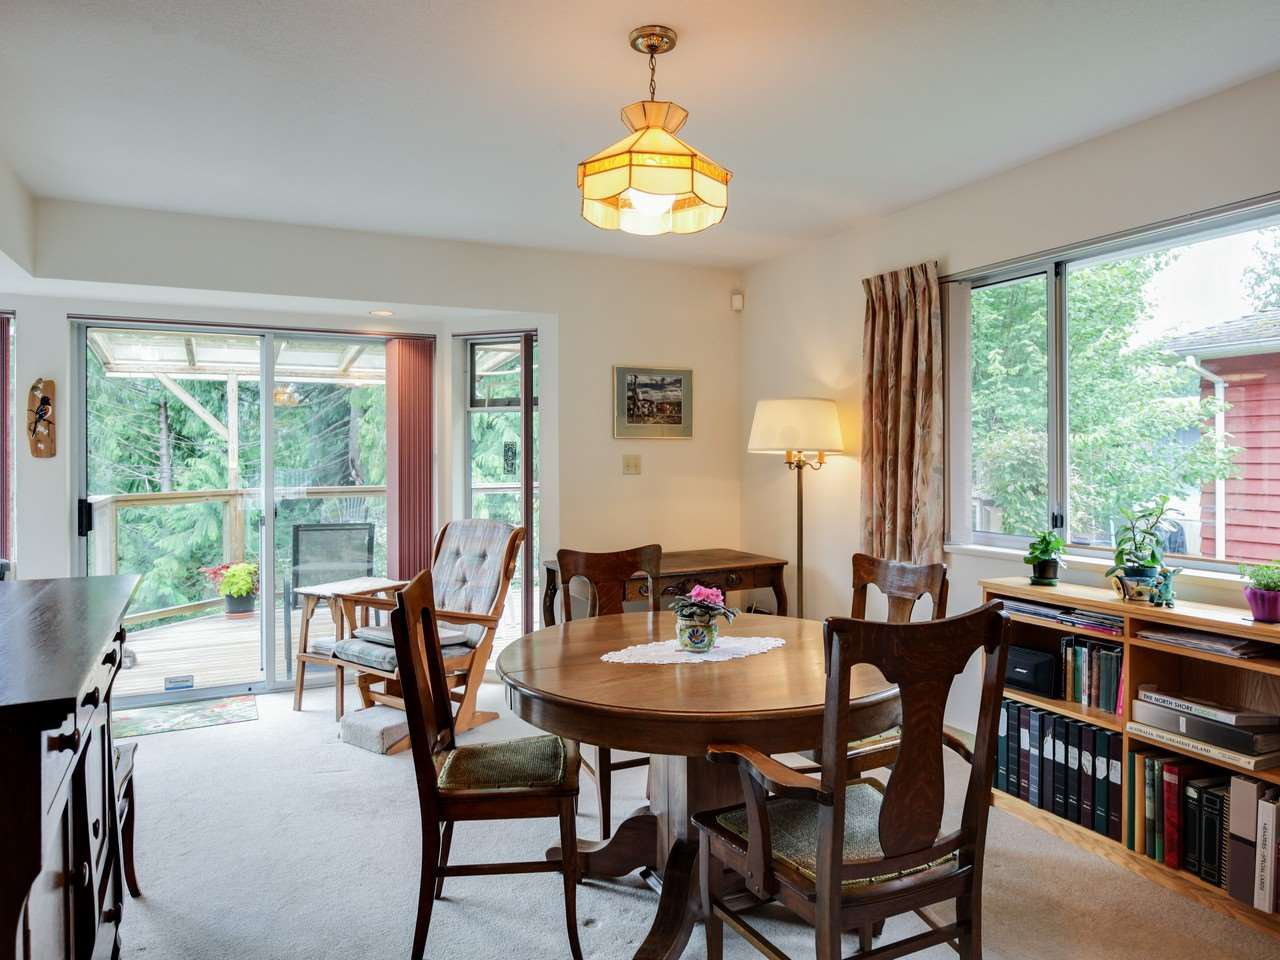 Photo 6: Photos: 4120 LYNN VALLEY ROAD in North Vancouver: Lynn Valley House for sale : MLS®# R2100168